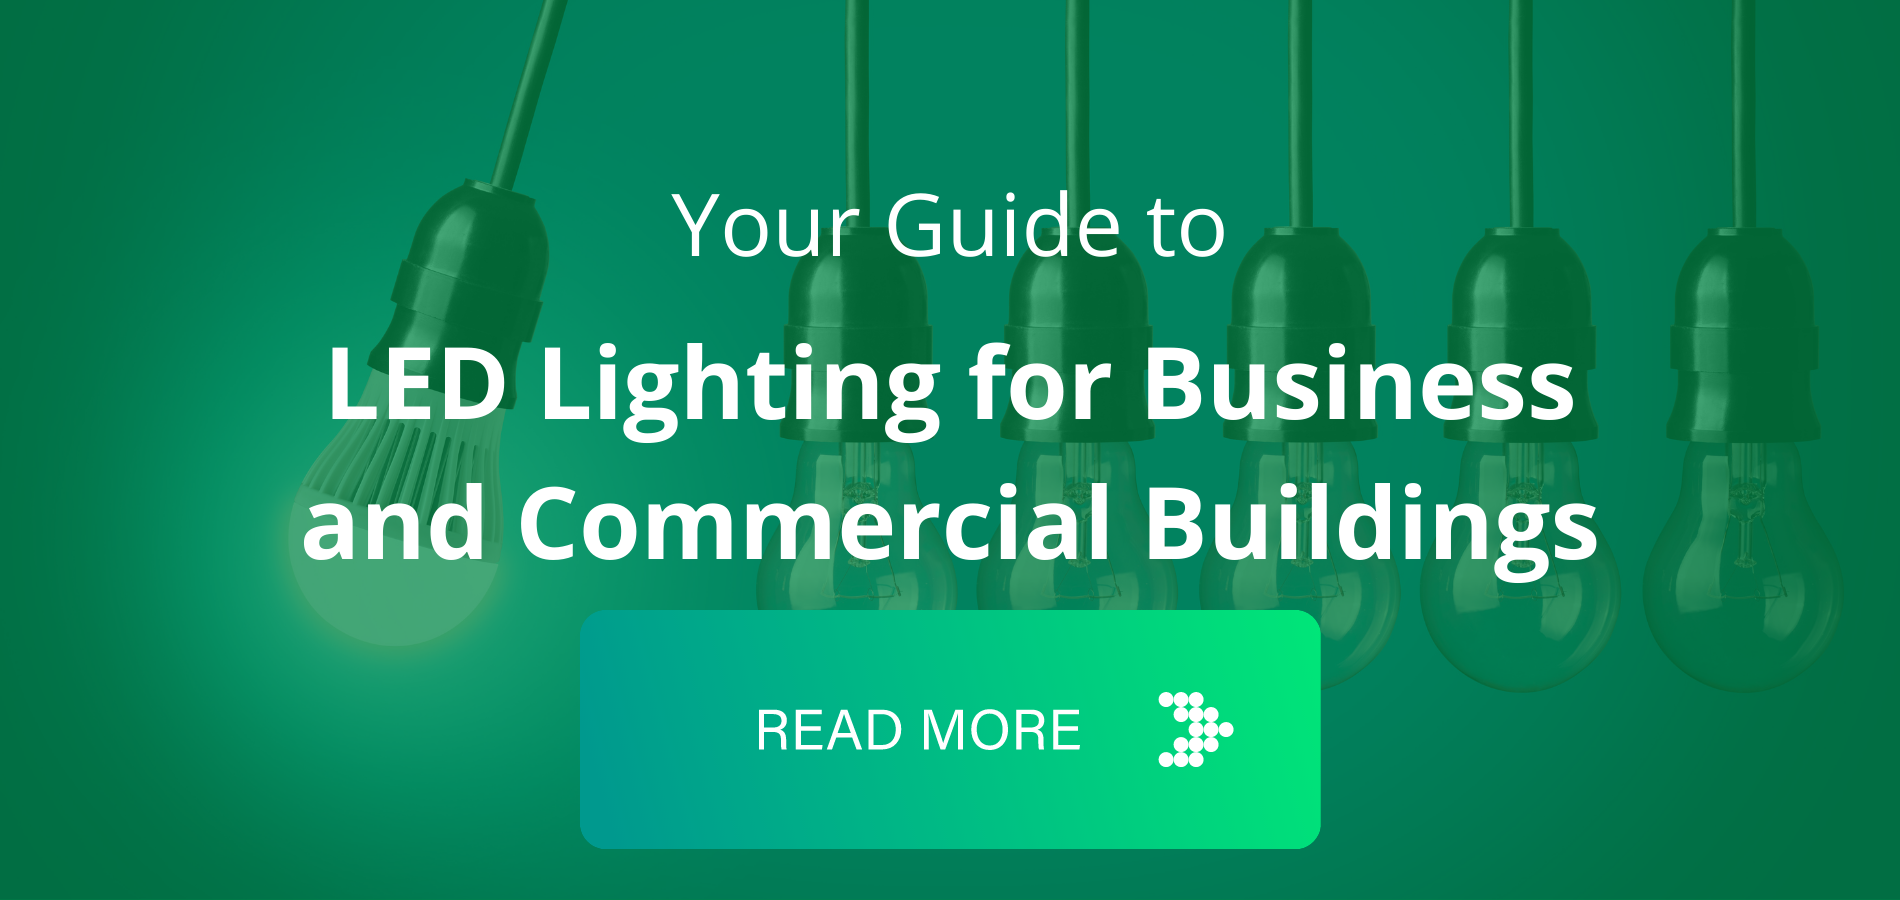 Benefits of LED lighting image call-to-action linking to another blog post